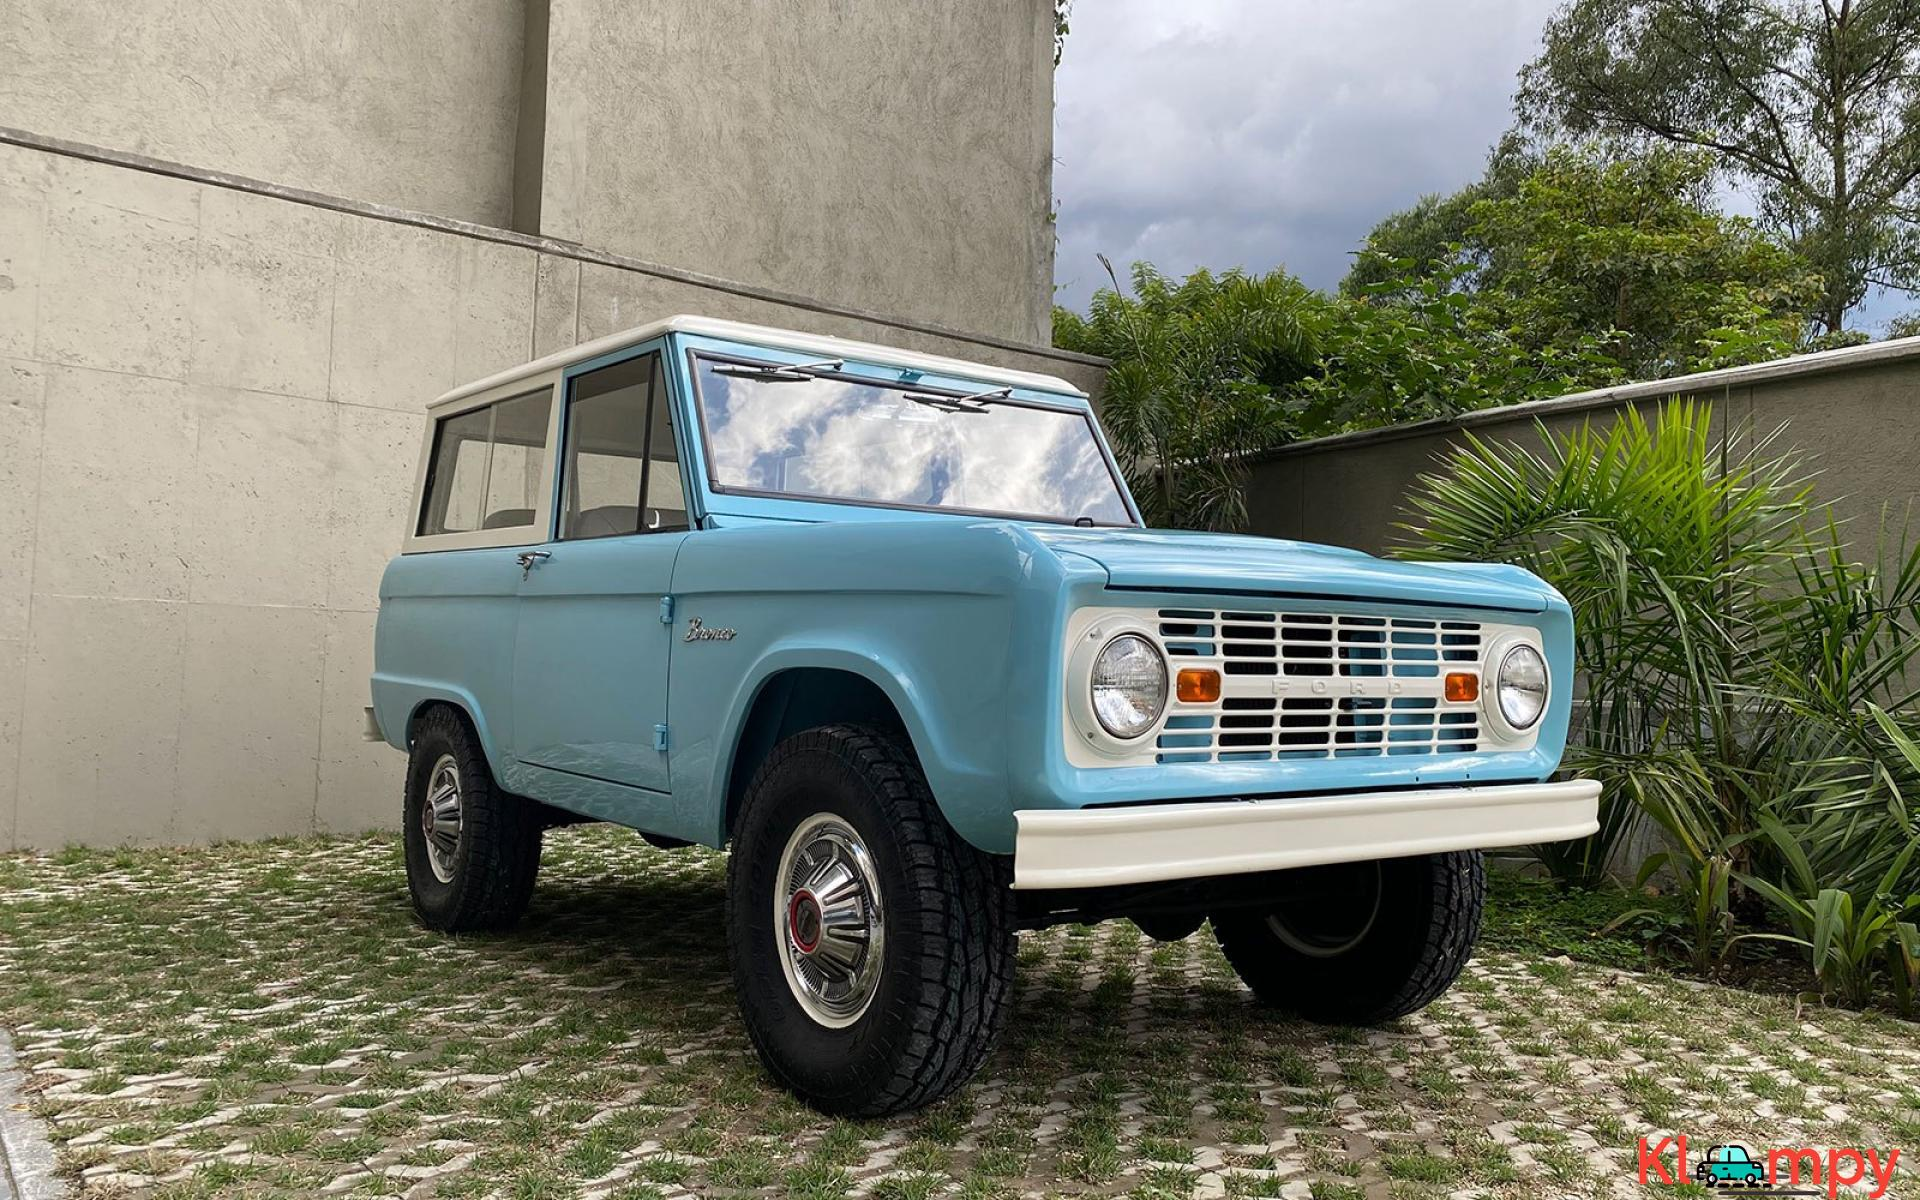 1967 Ford Bronco 170 Inline-Six - 4/21